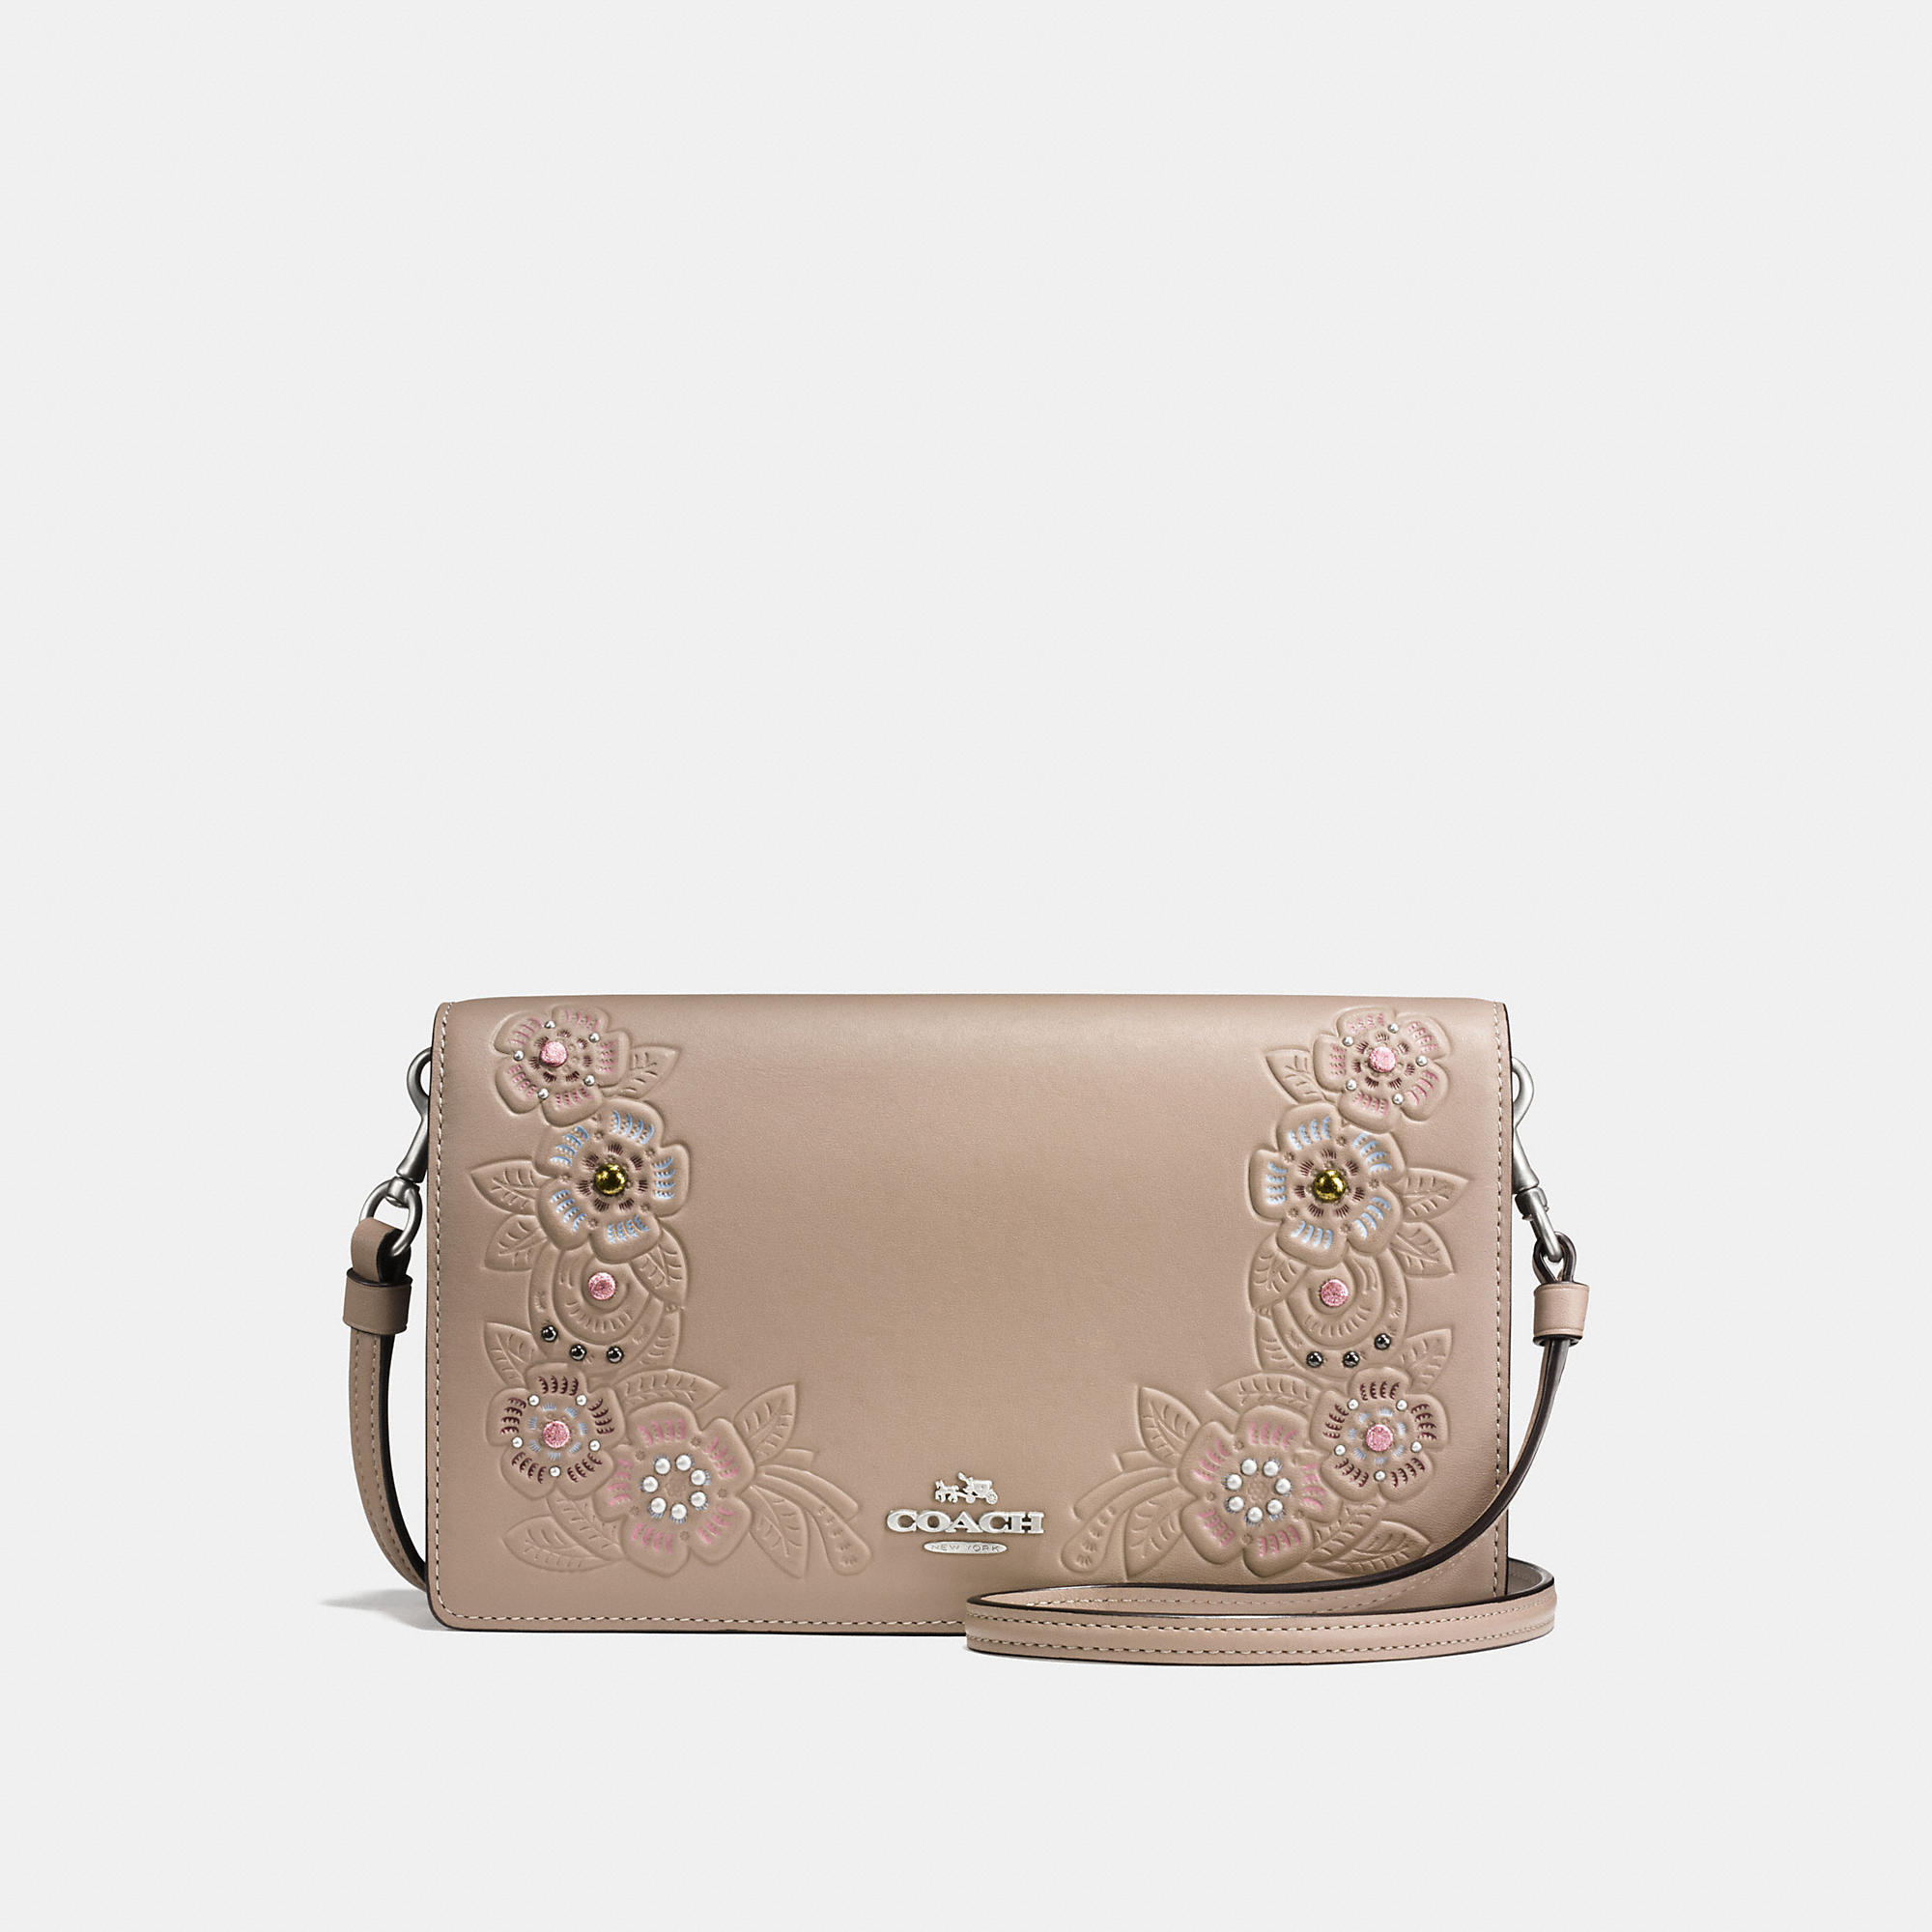 Coach Foldover Crossbody Clutch In Glovetanned Leather With Tea Rose Tooling